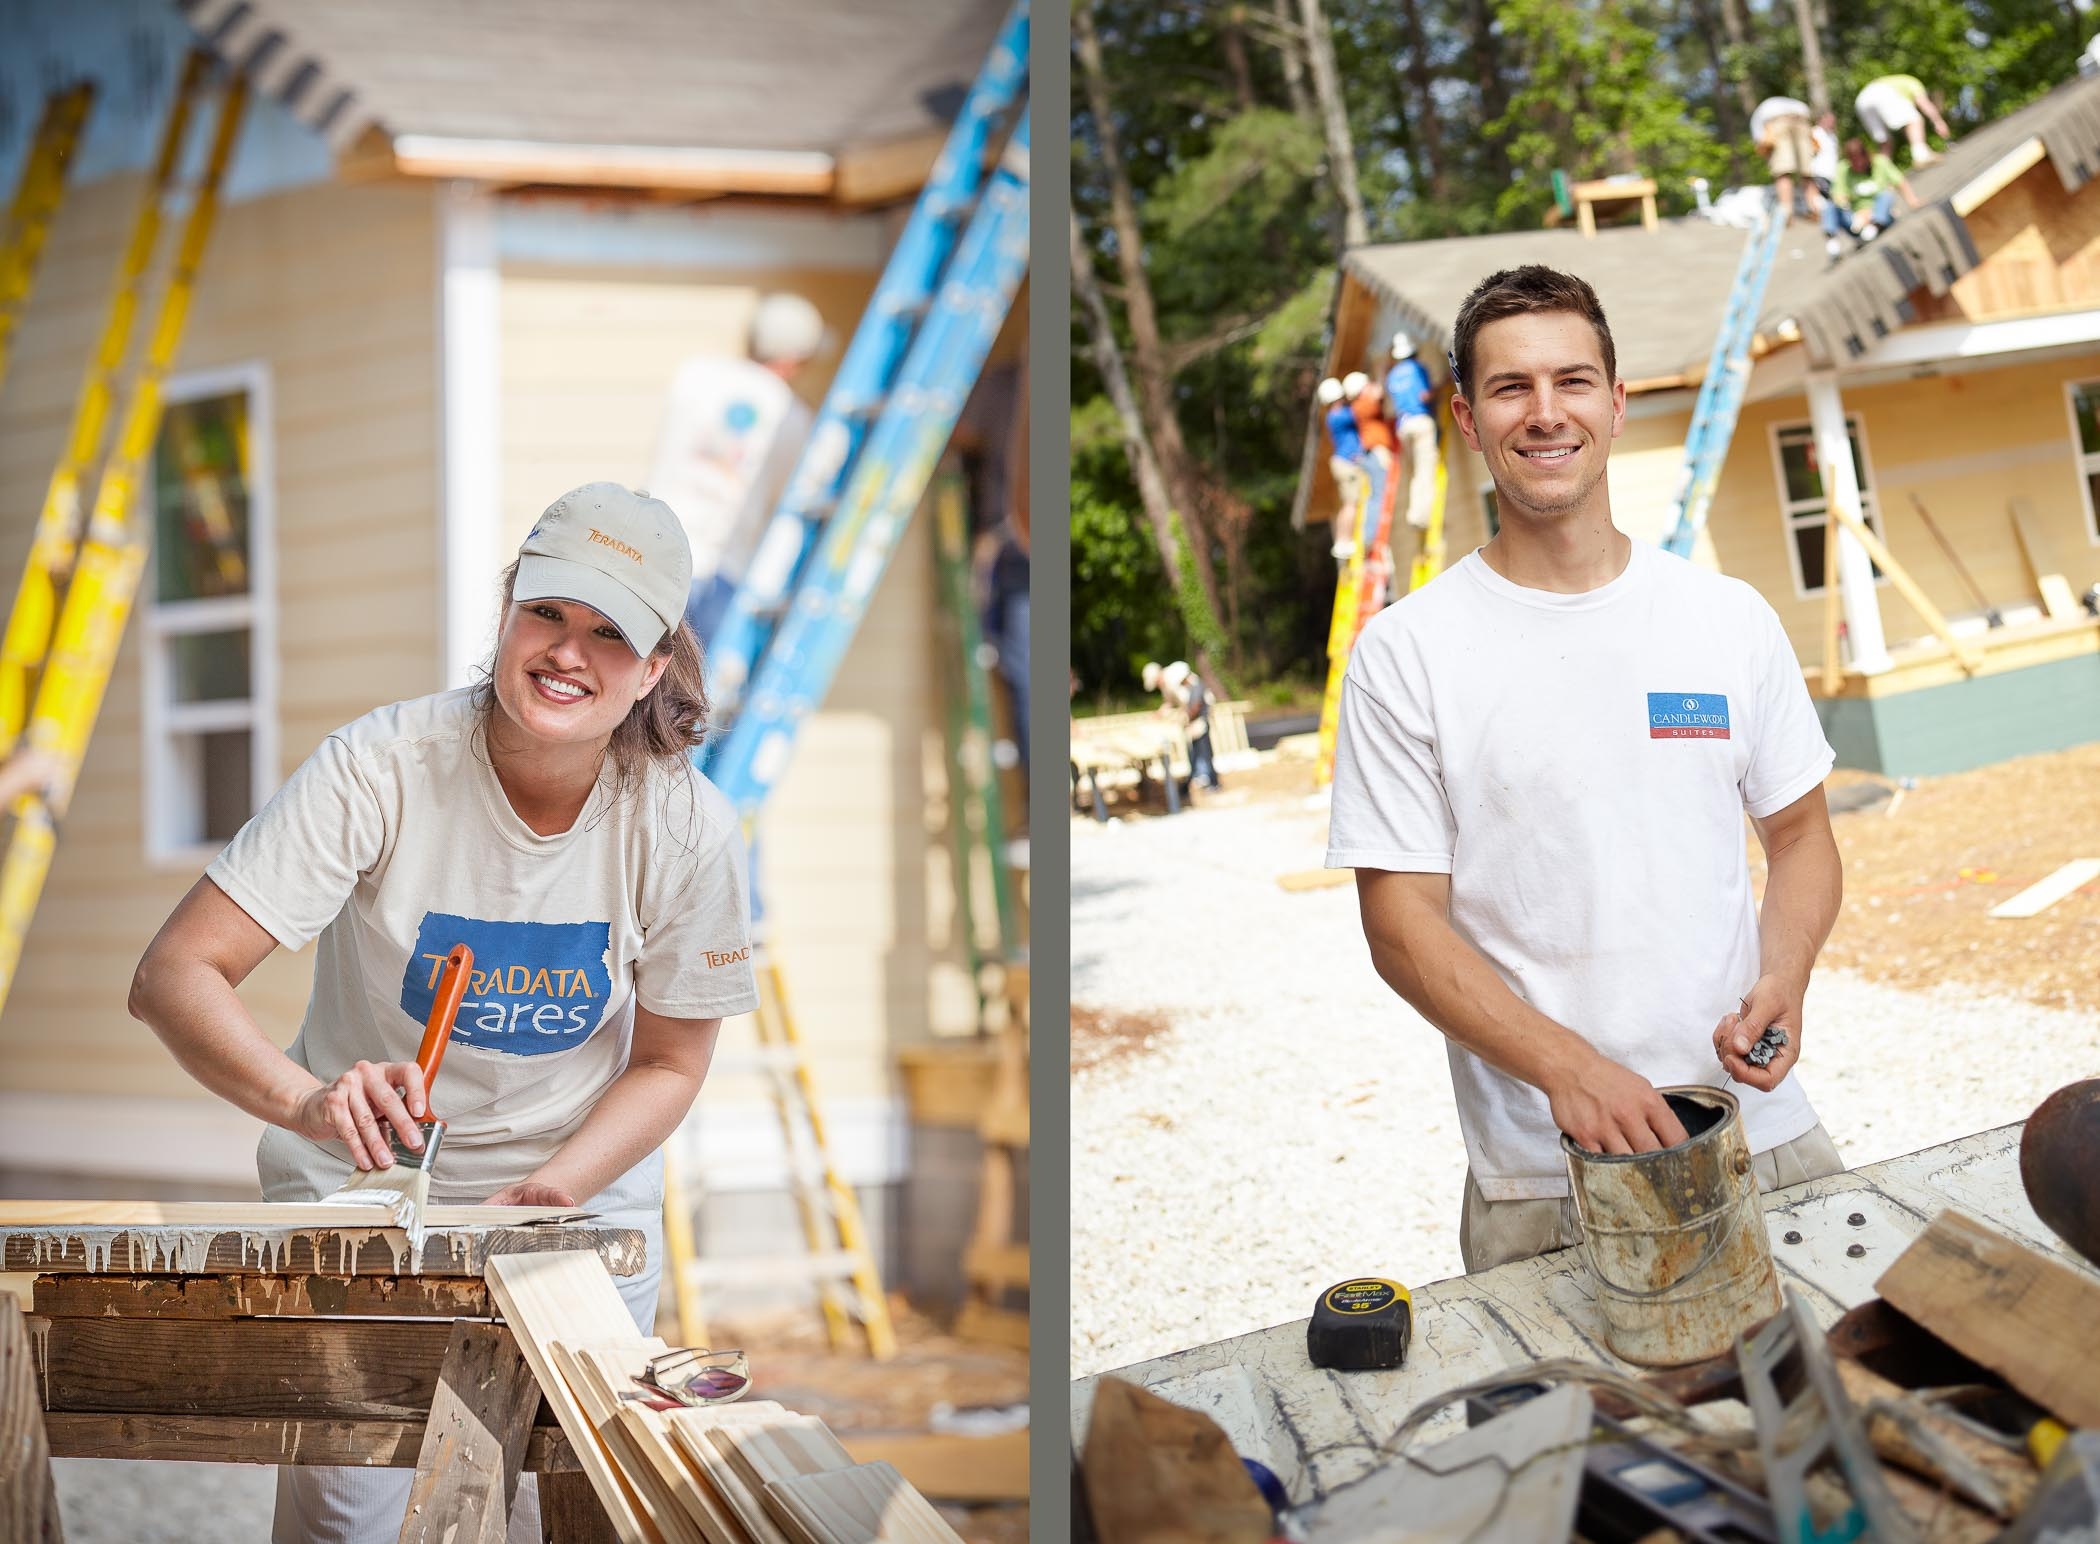 Building home in Atlanta for Habitat for Humanity